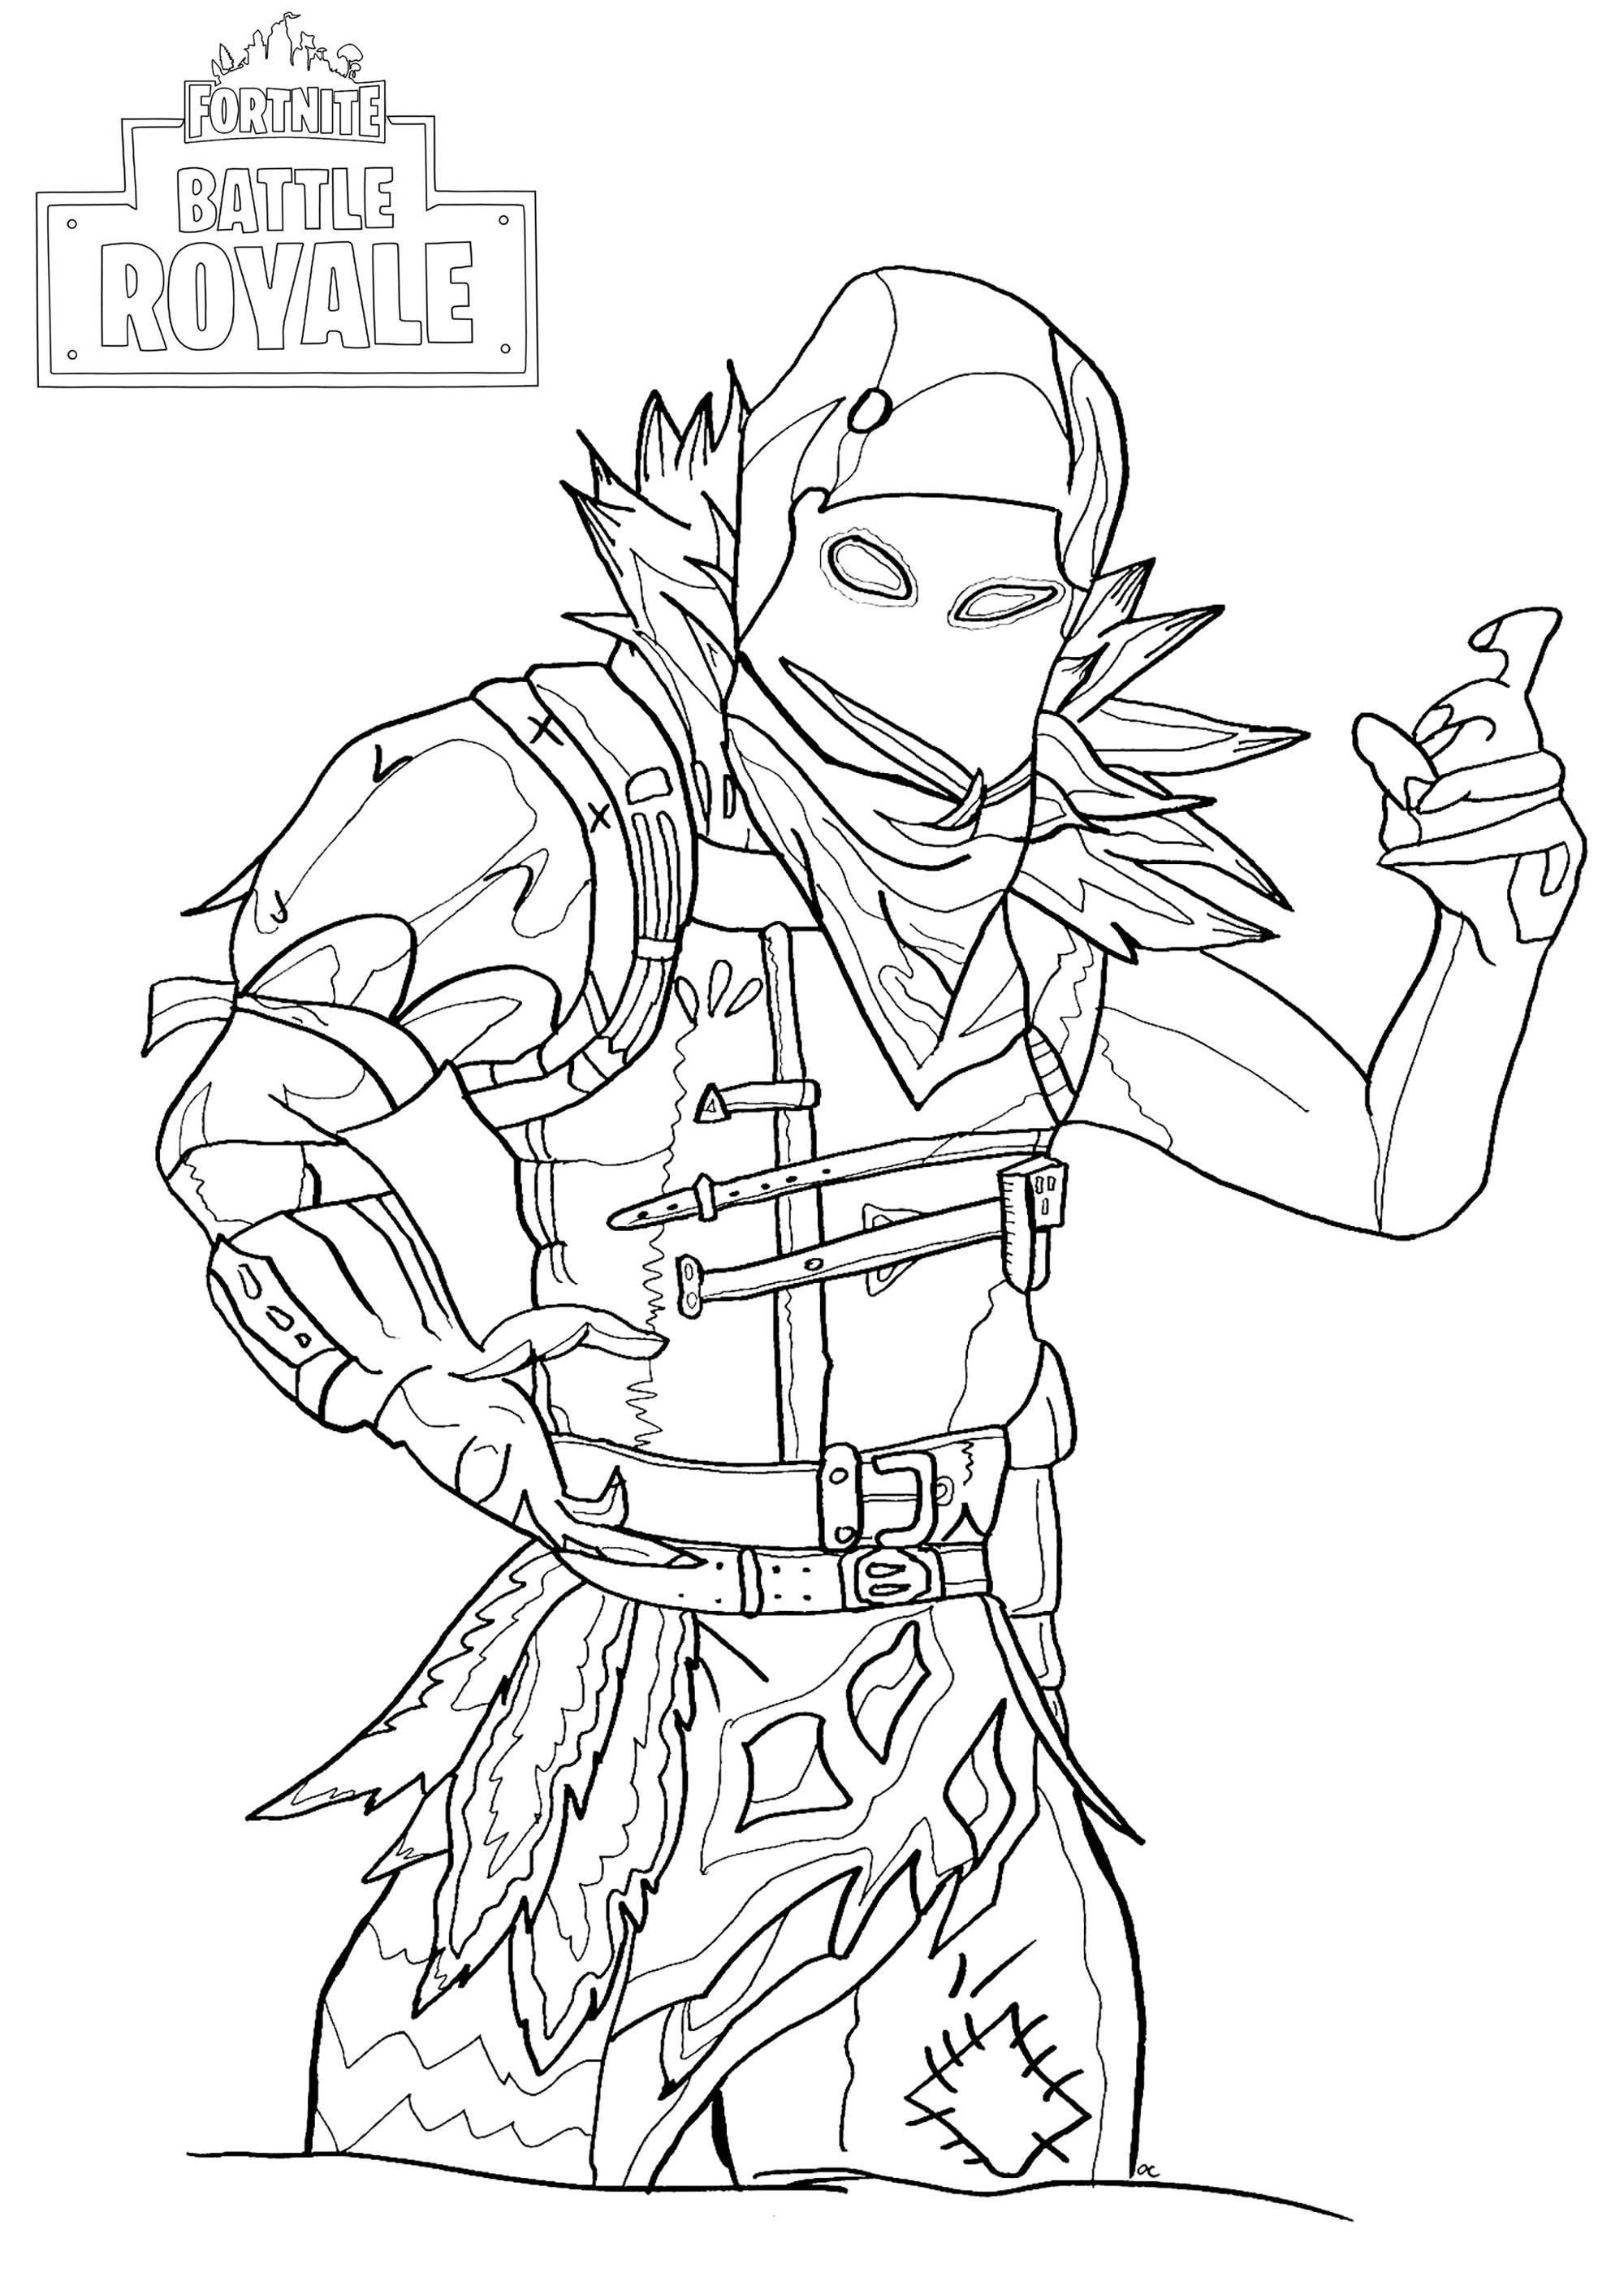 Top 10 Fortnite Coloring Pages Free Coloring Pages Drawings